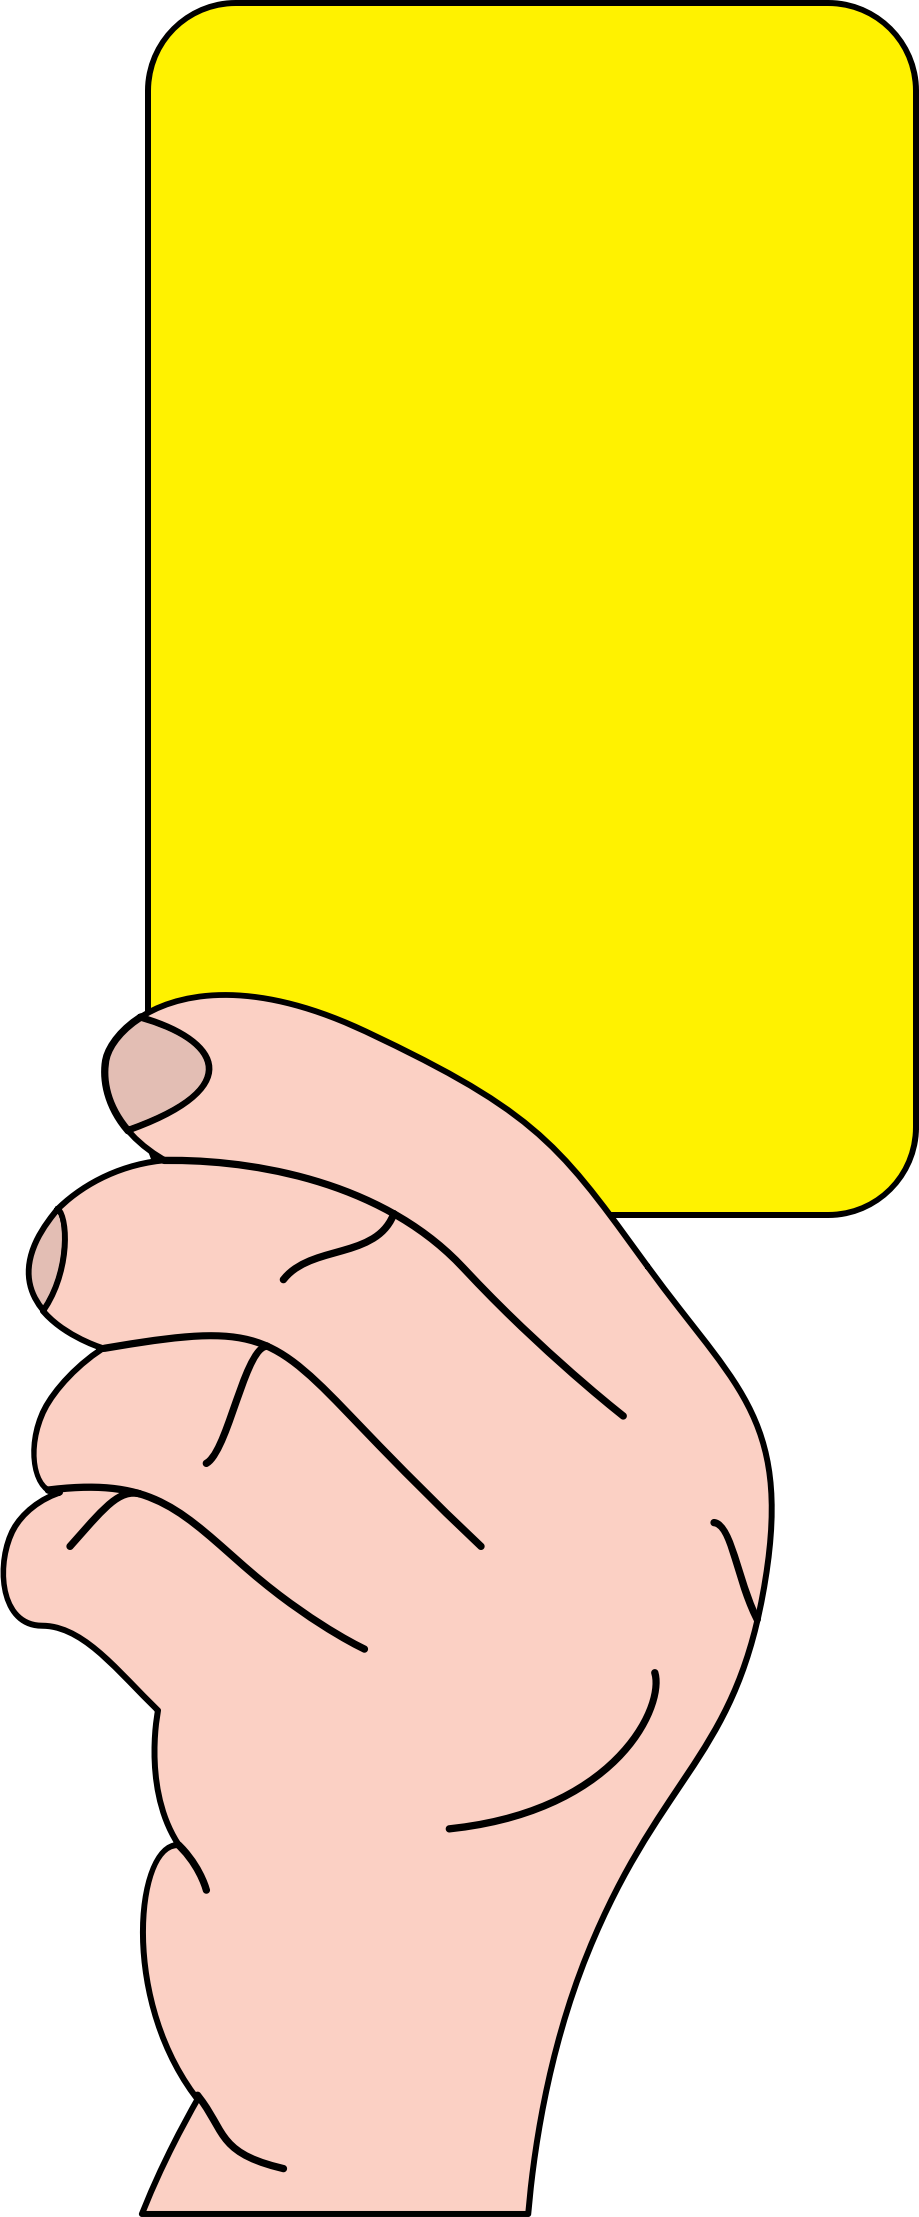 Referee football clipart graphic royalty free library Clipart - Referee showing yellow card graphic royalty free library